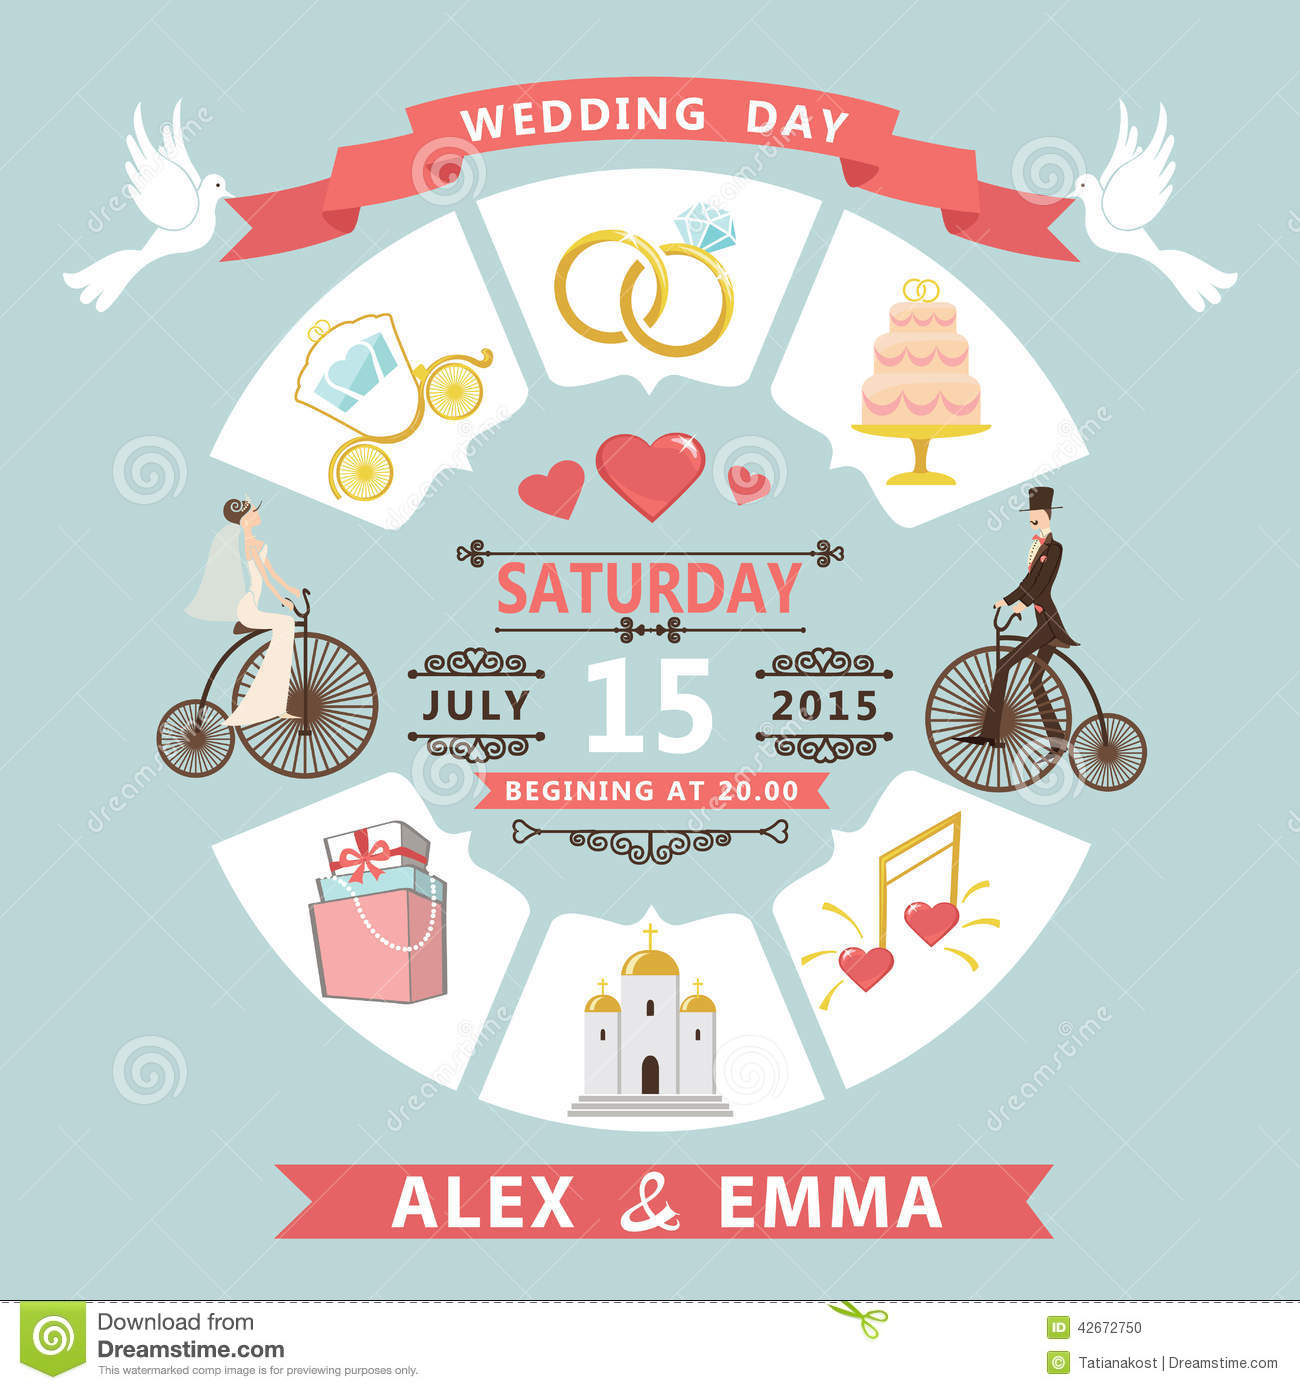 Wedding Invitation In Infographic Style. Bride,groom On